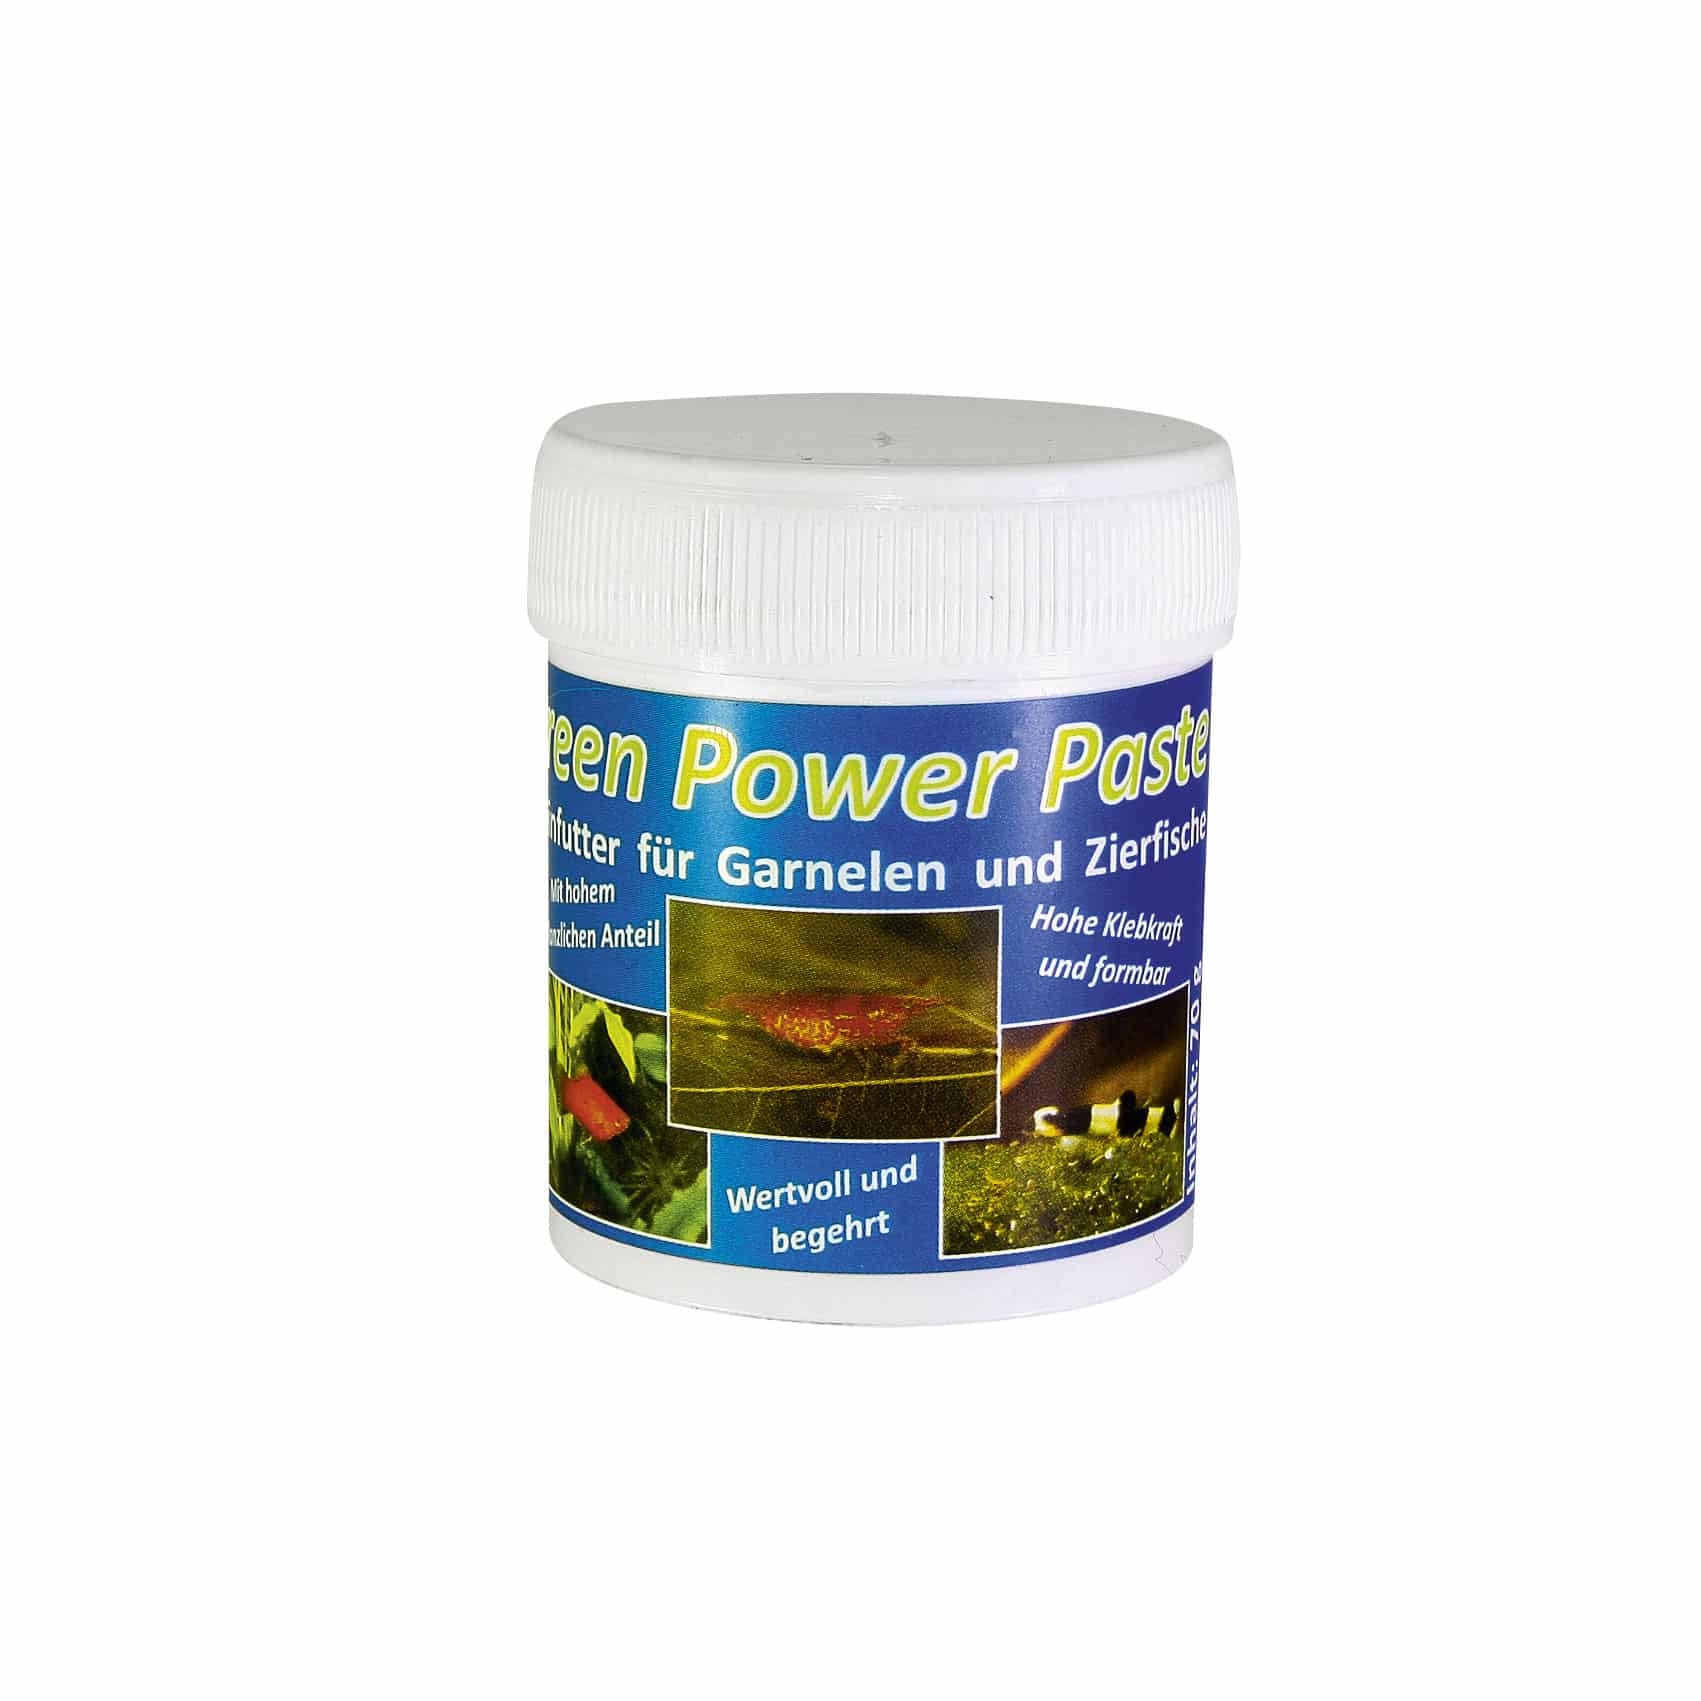 Green Power Paste 70g